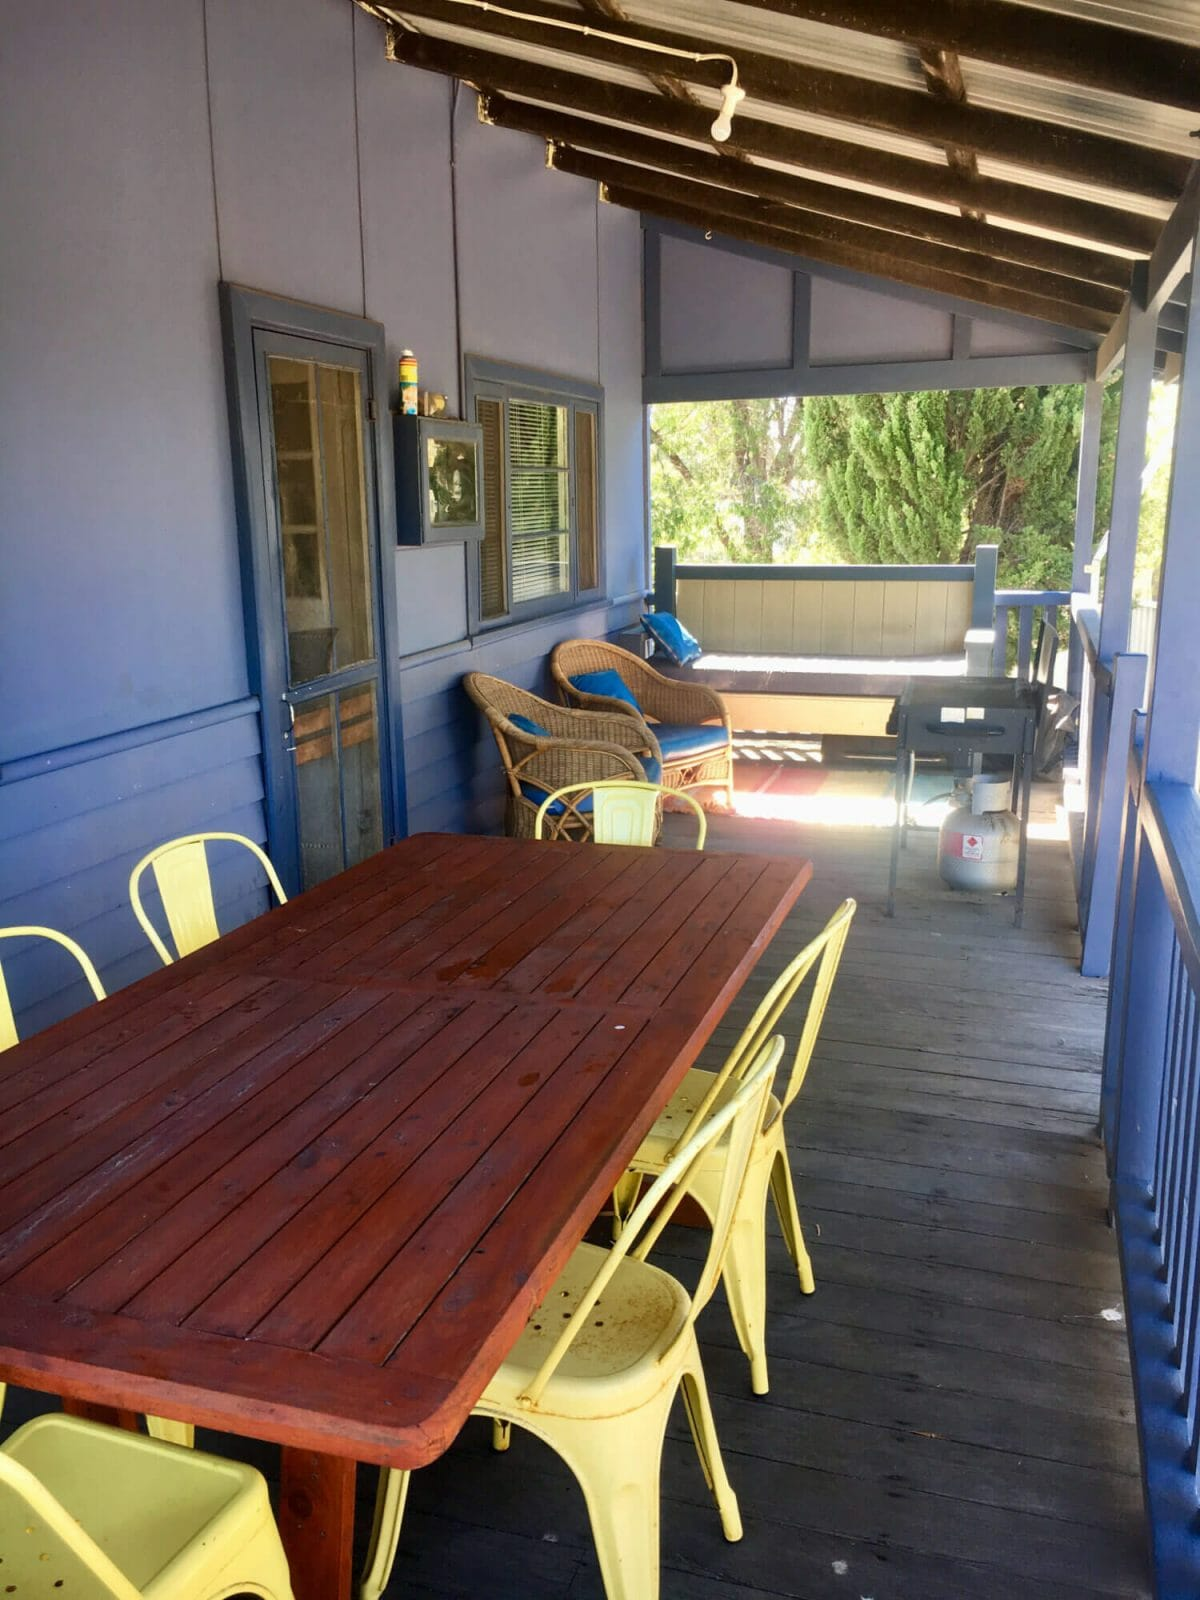 Weekender - Accommodation in Bremer Bay - 21 Barbara Street. Outdoor verandah features dining area, outdoor lounge area and BBQ